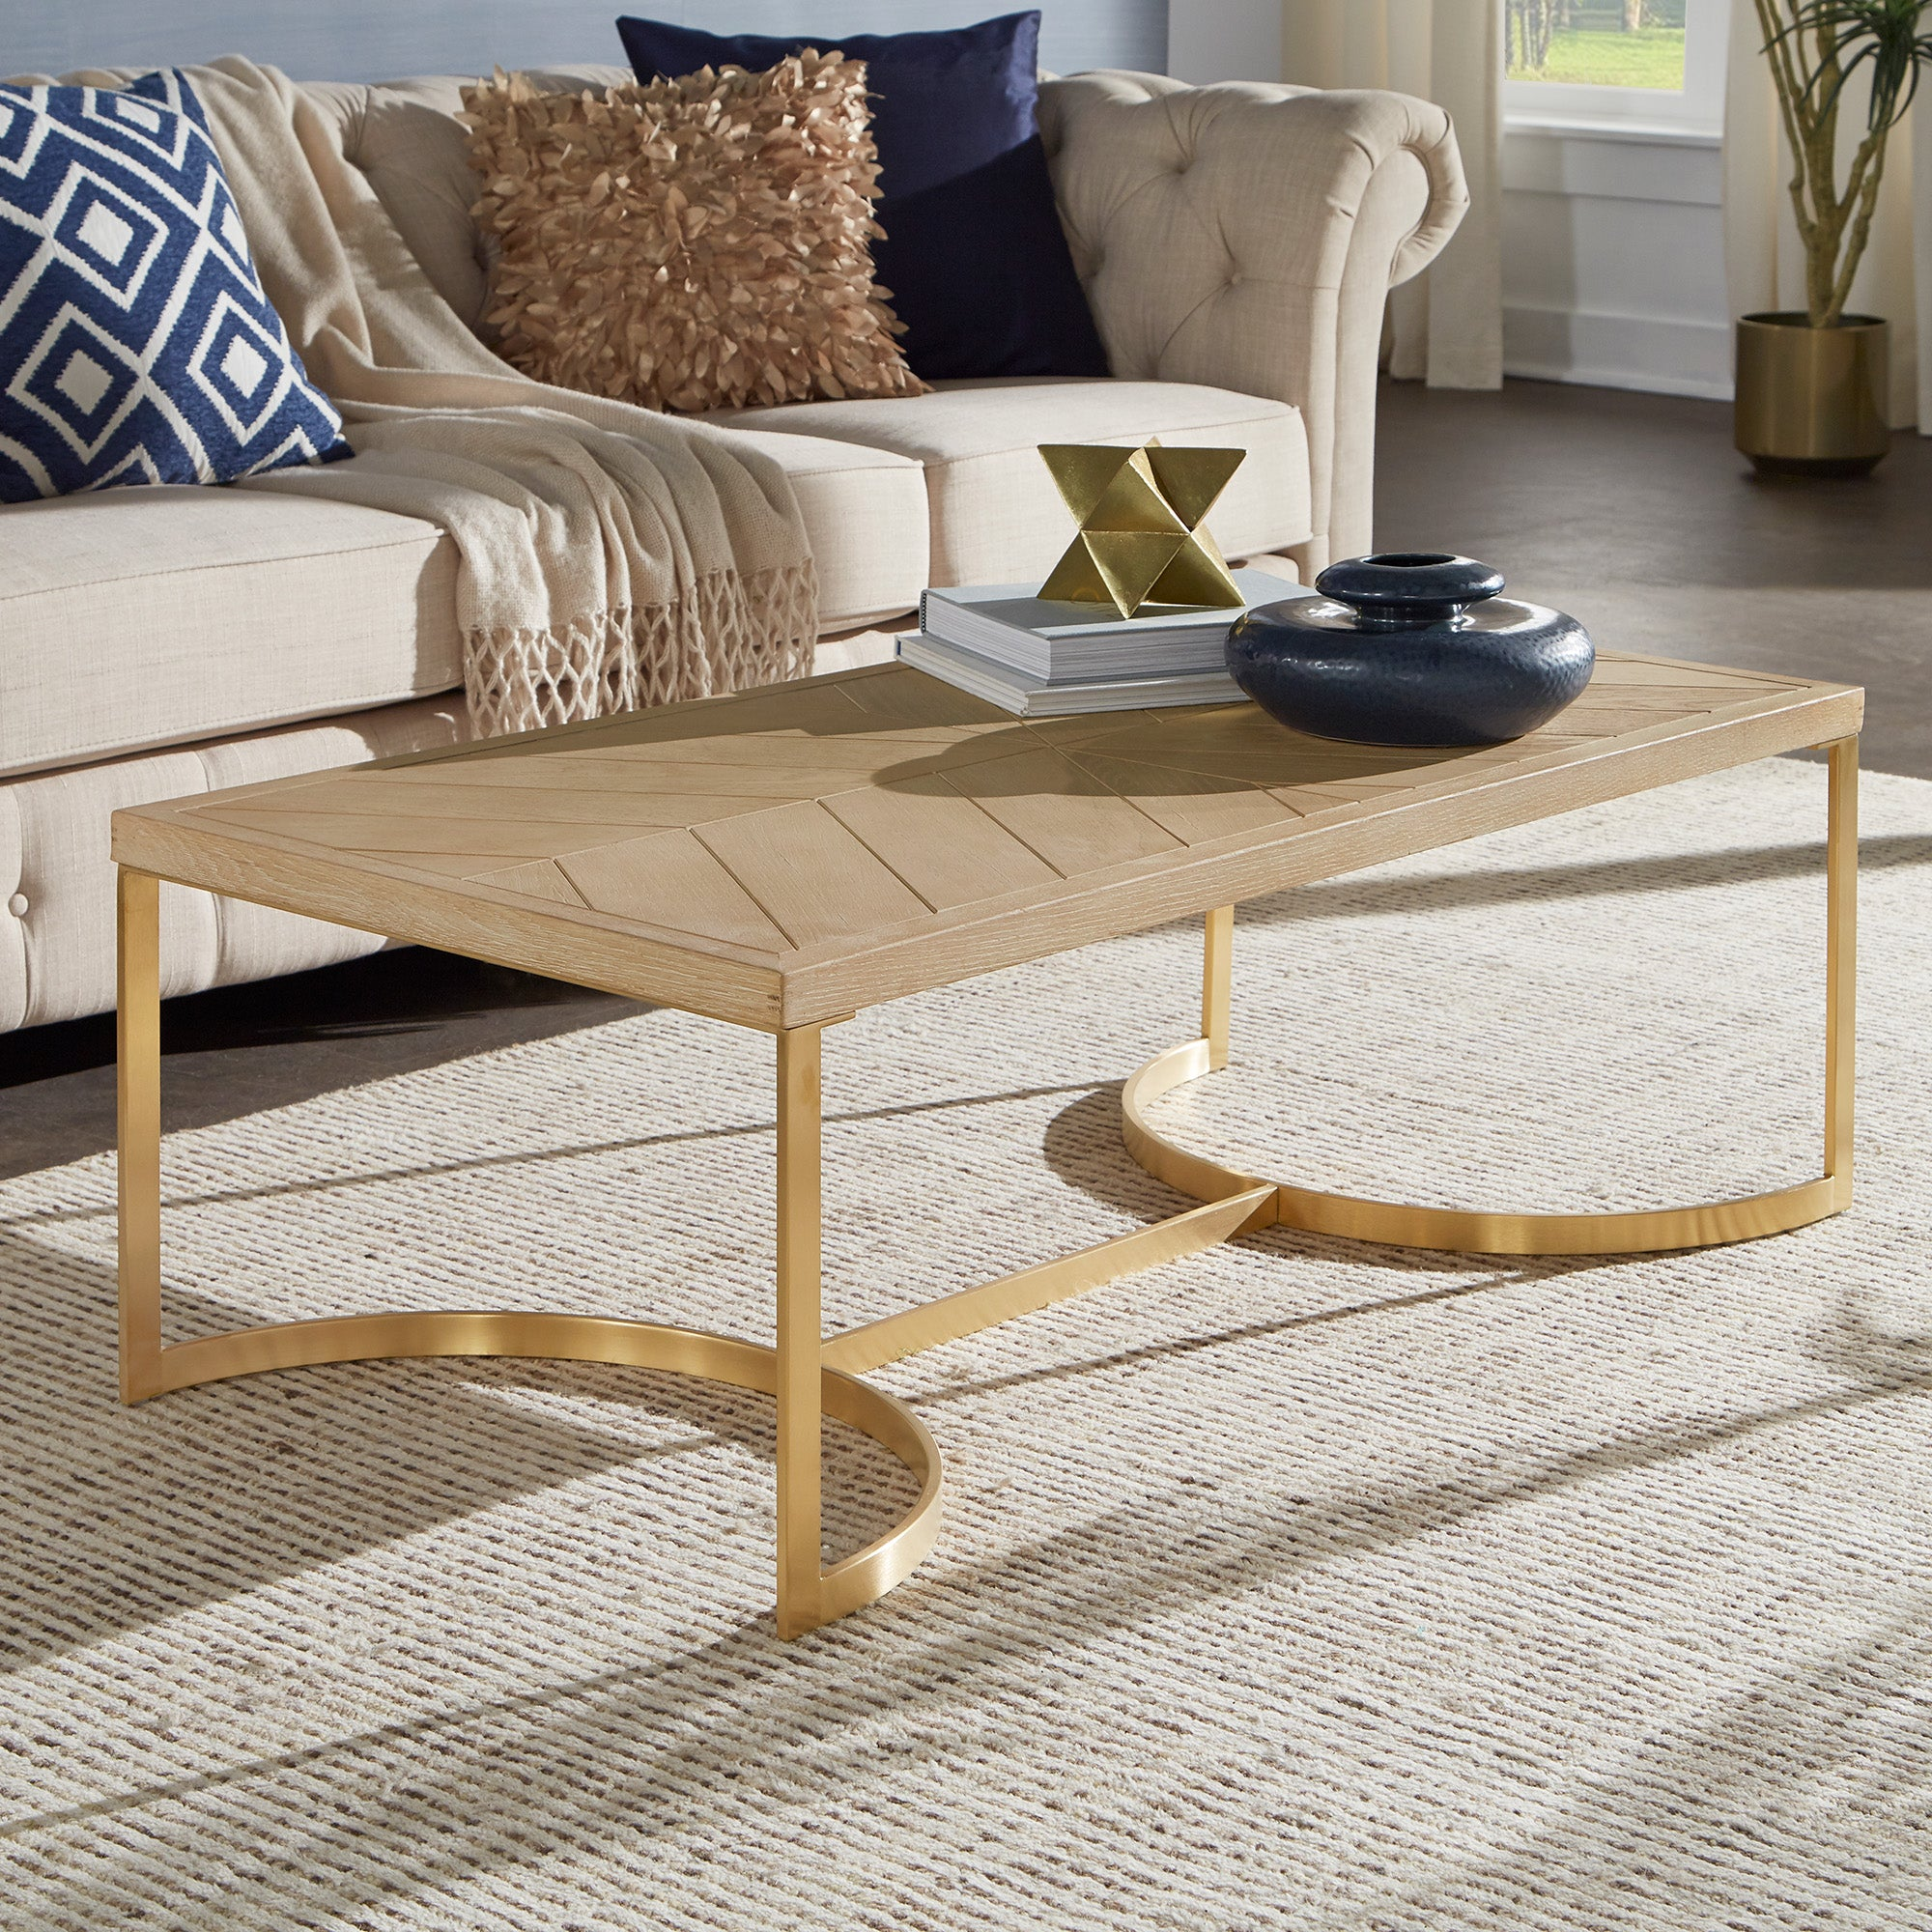 Natural Finish and Gold Table - Coffee Table